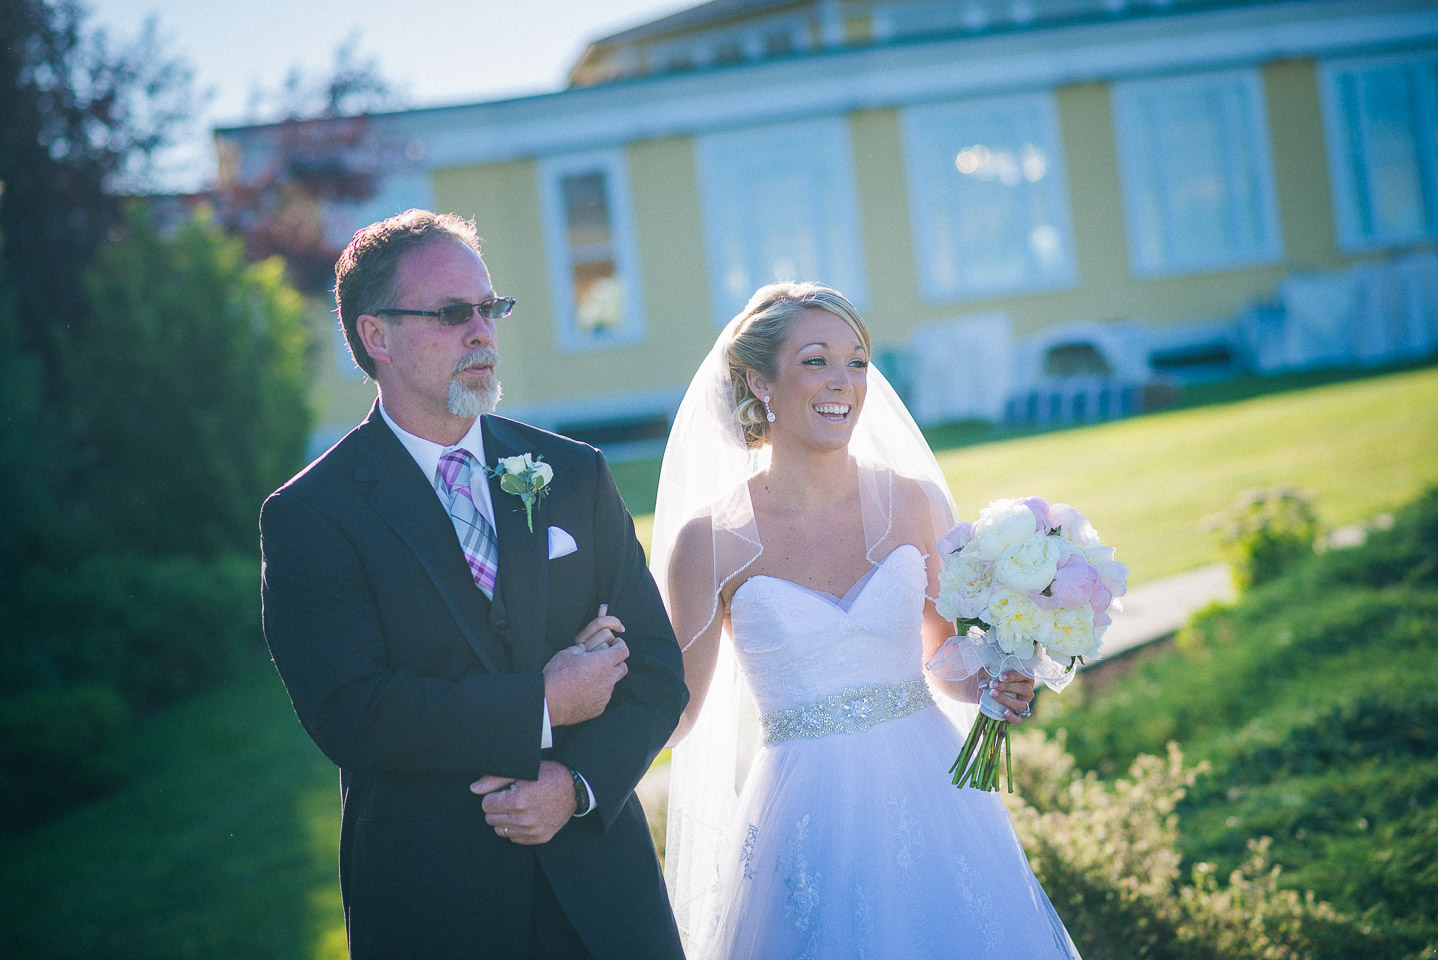 NH Wedding Photography: bride walking with dad